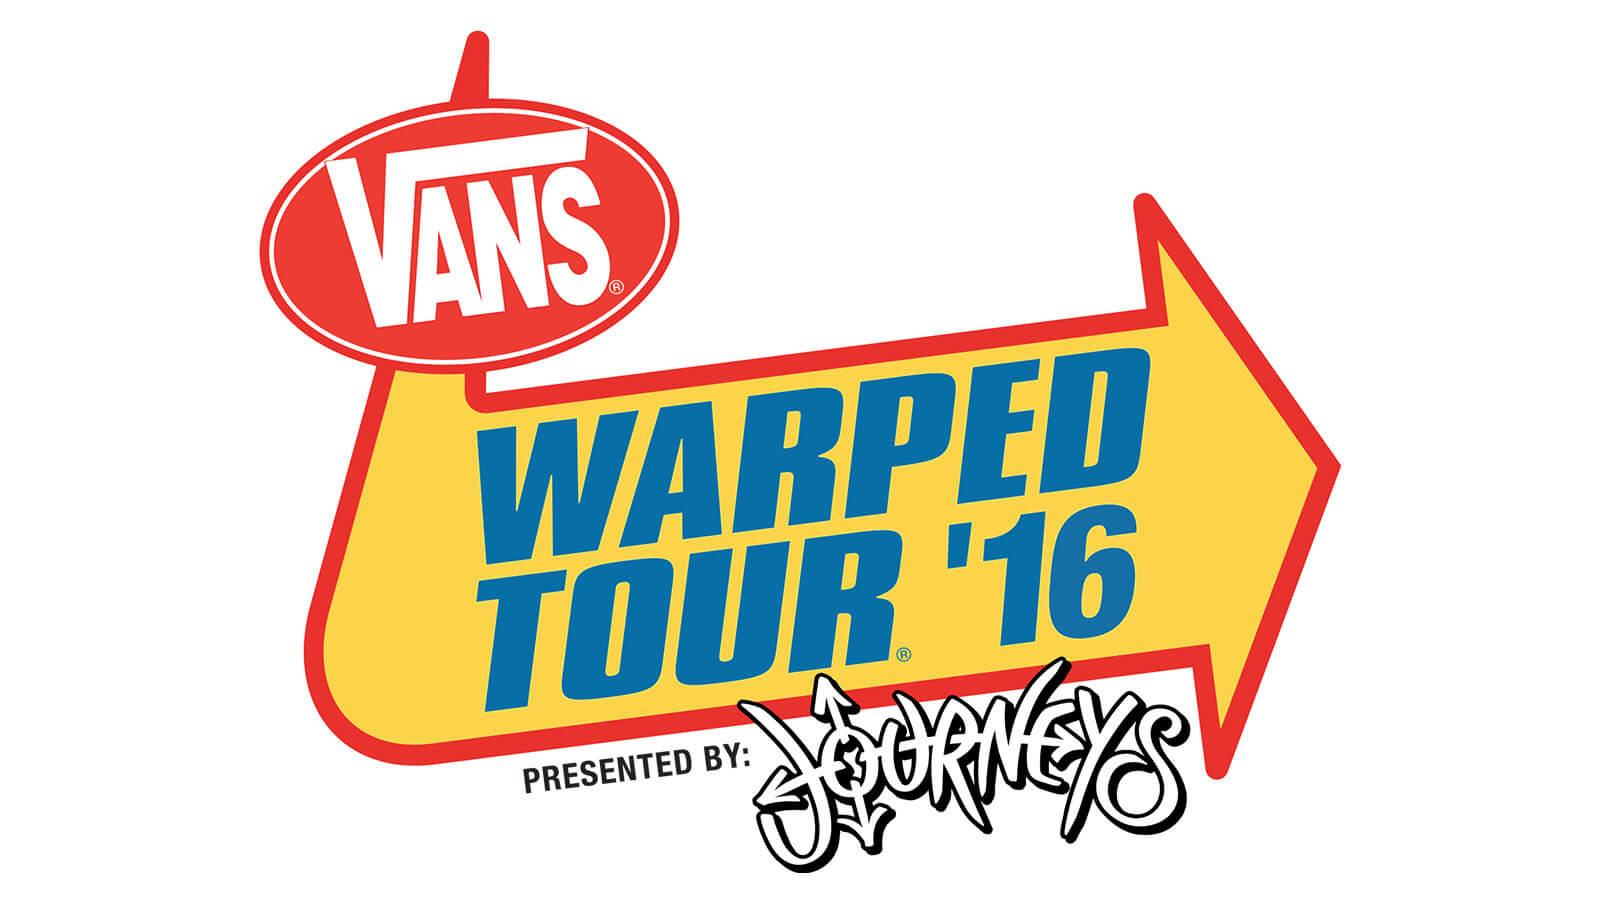 2016 Vans Warped Tour®, Presented by Journeys® Lineup To Be Revealed via Live Webcast From Campus Of Full Sail University - Hero image